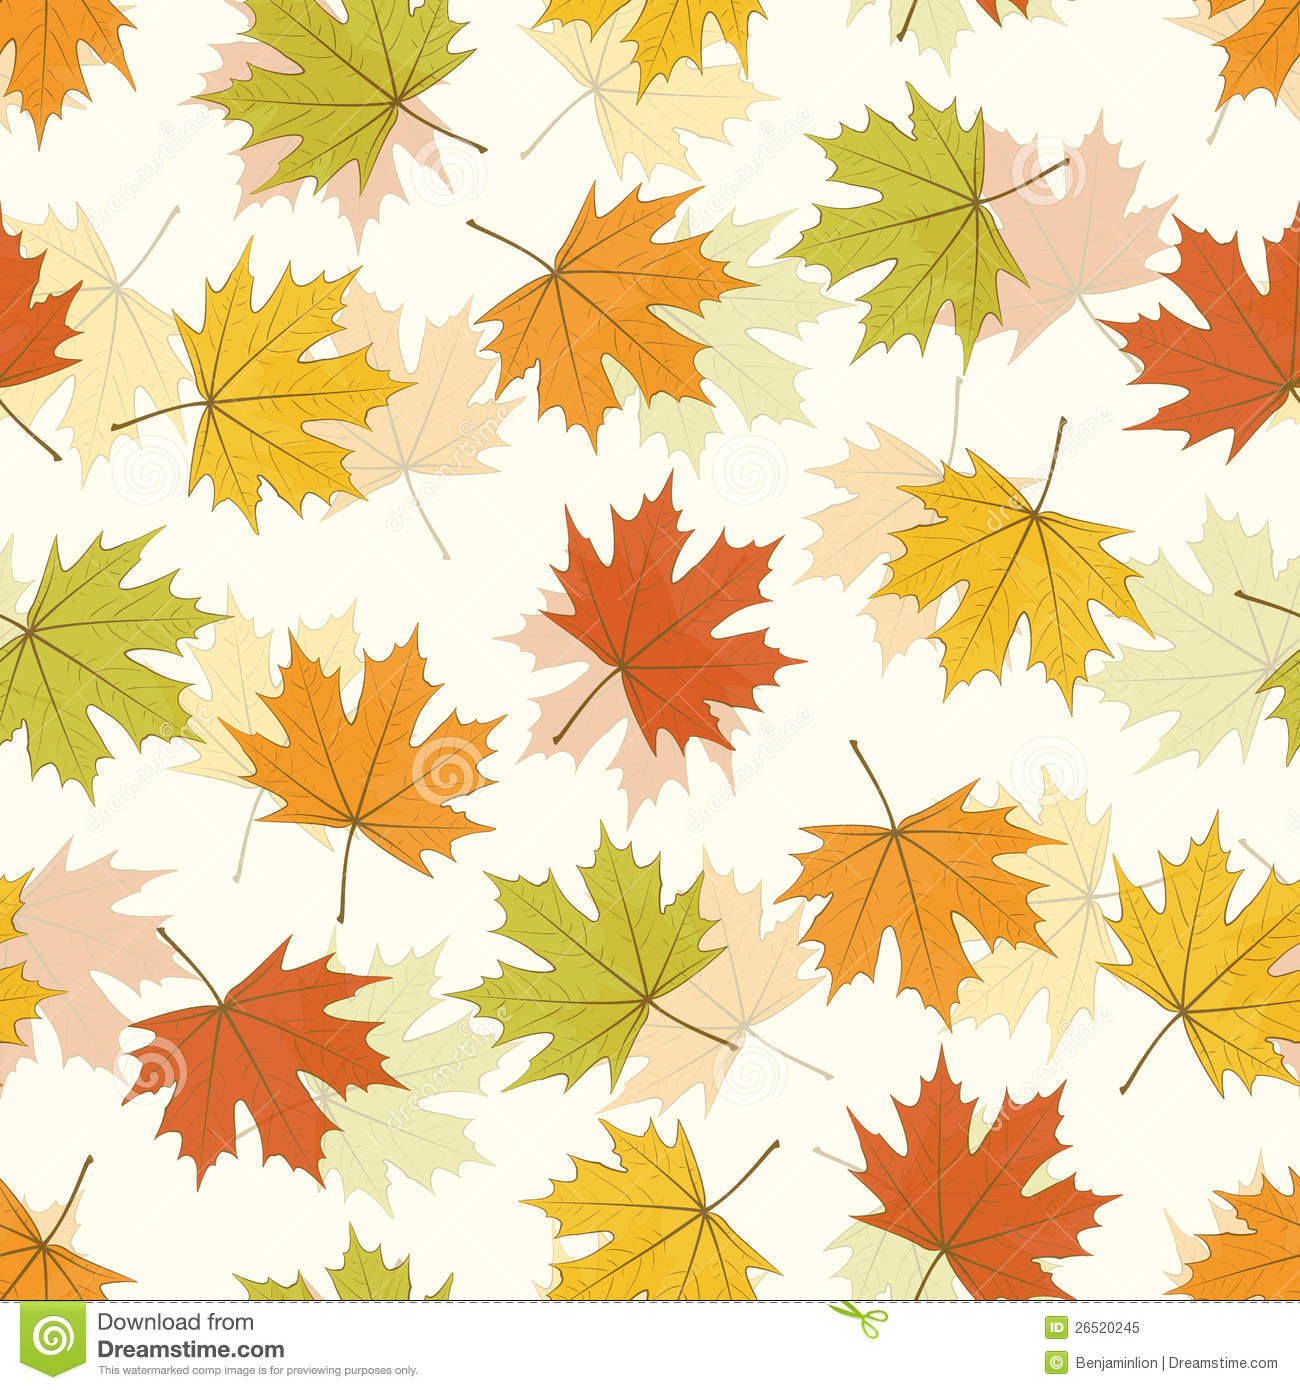 Fall Leaves Falling Wallpaper Maple Leaf Seamless Background Stock Vector Illustration